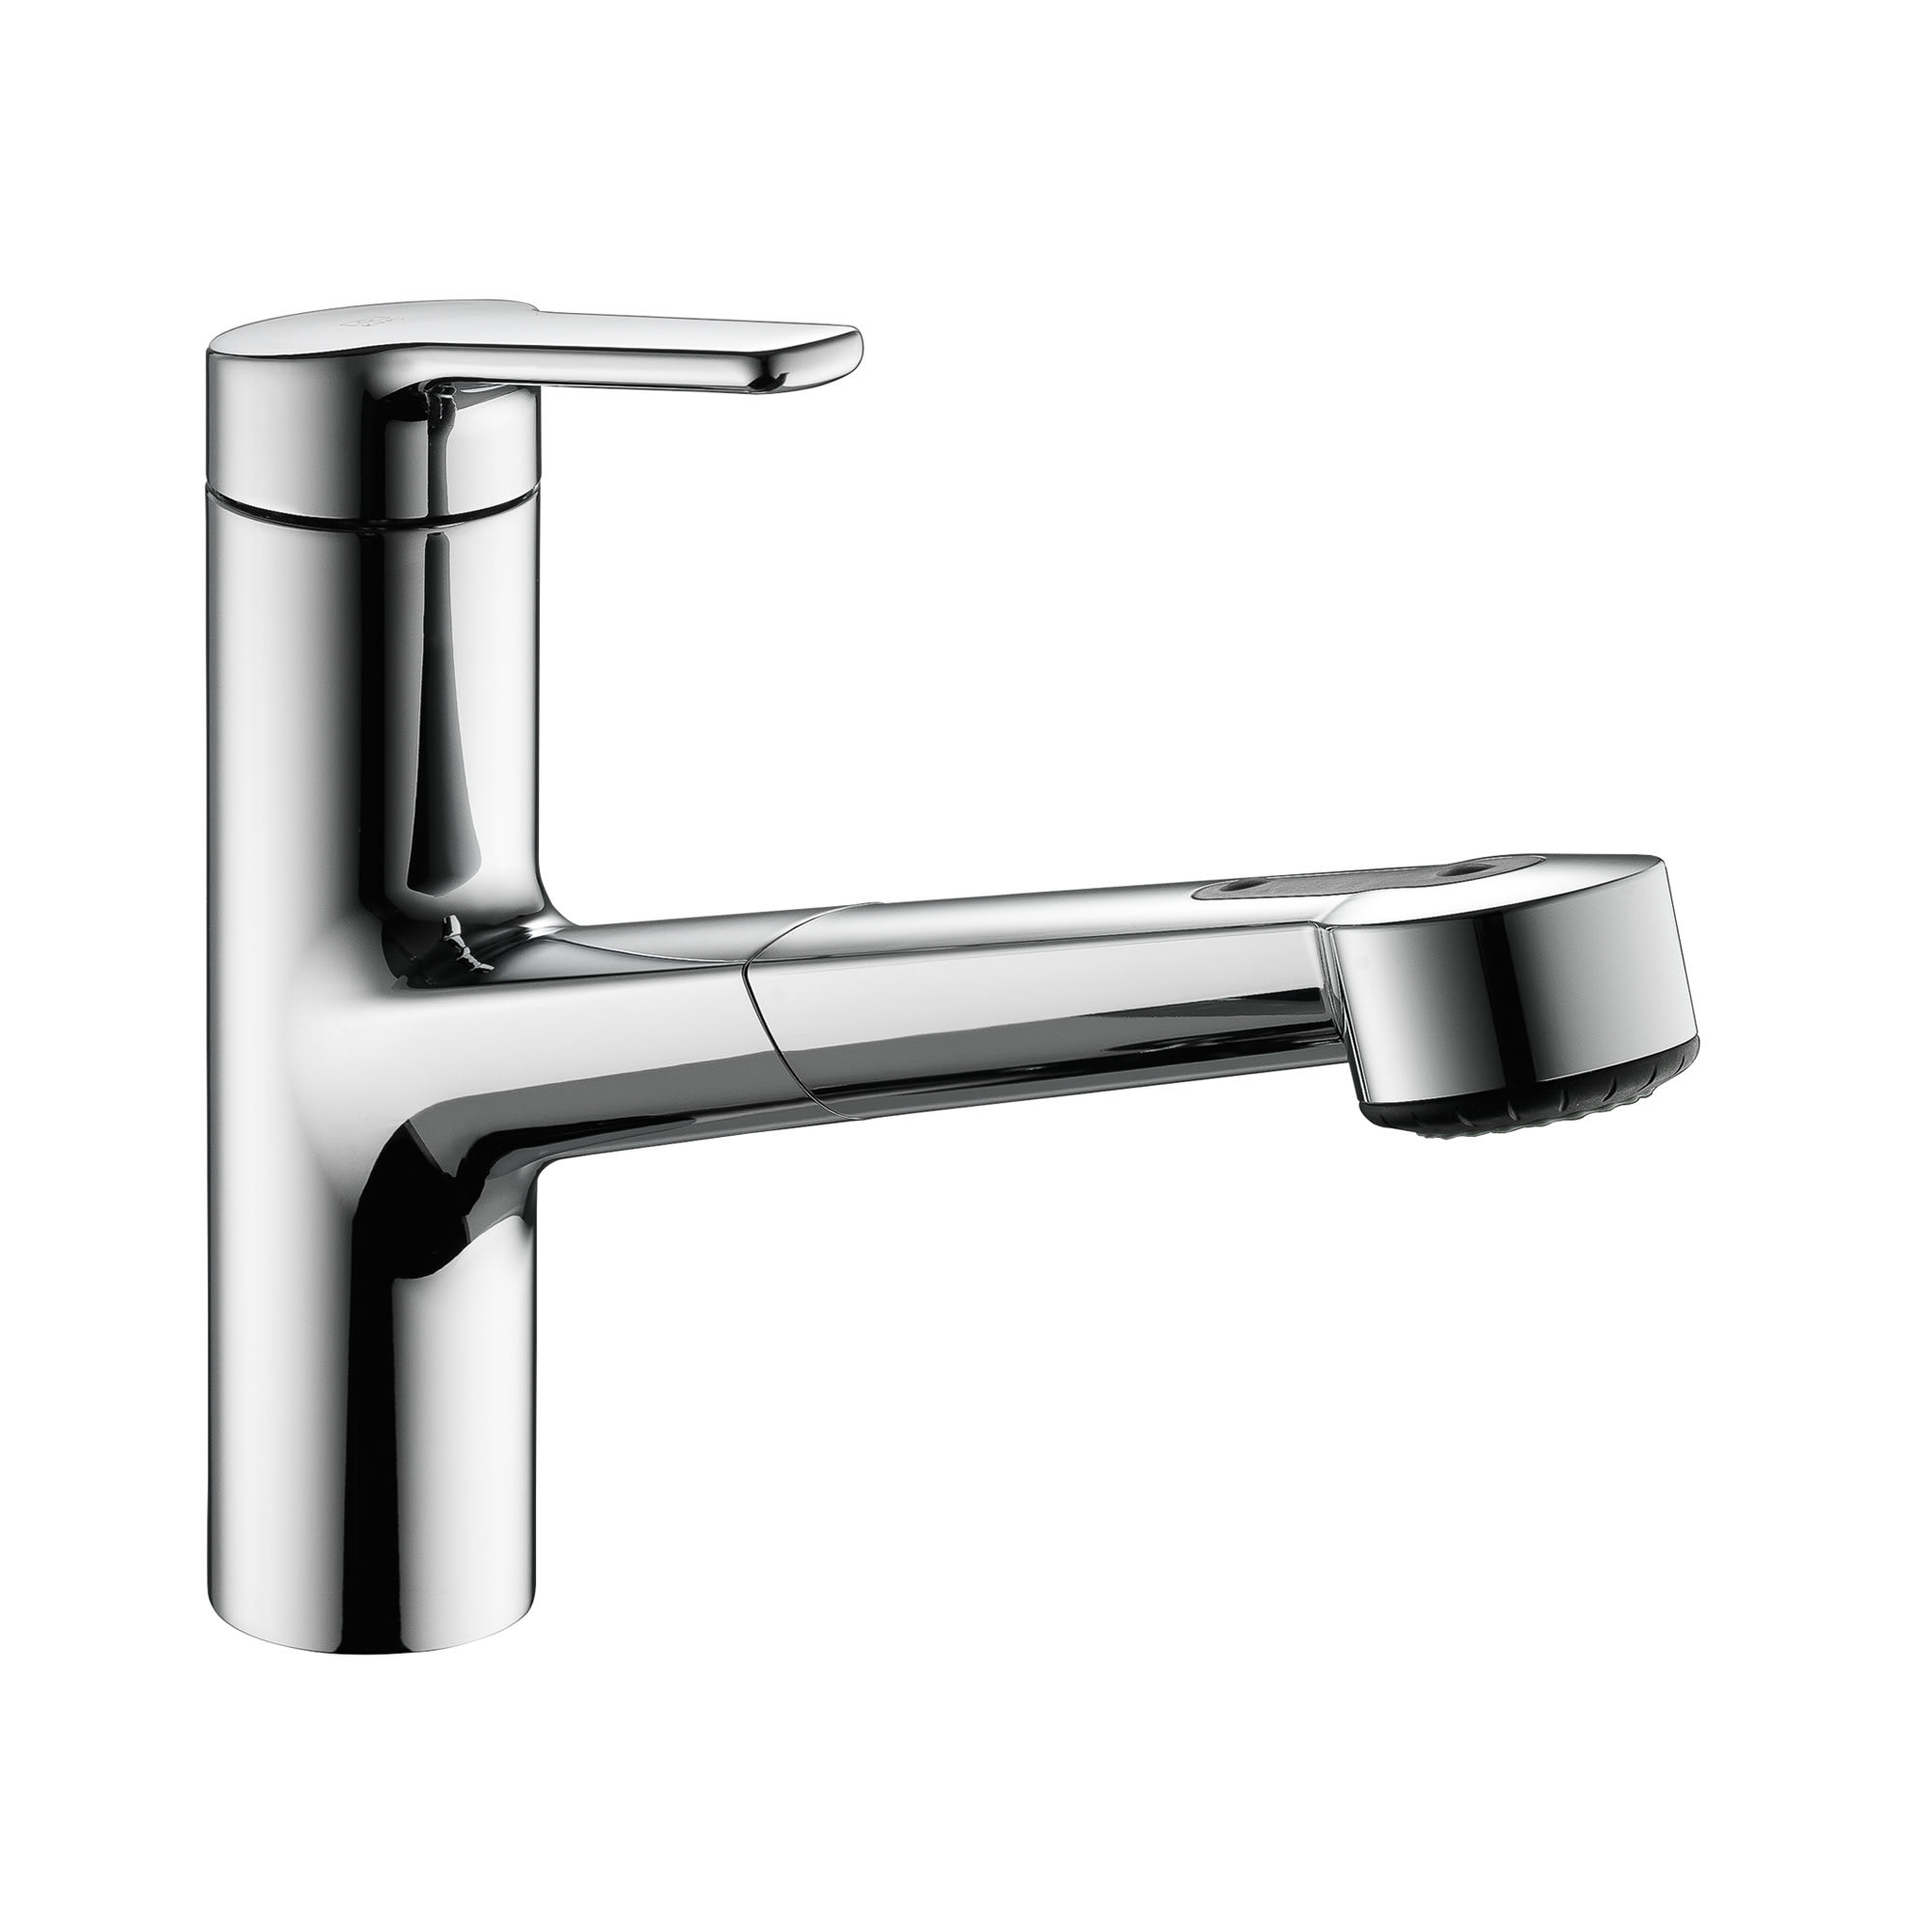 kitchen elegant photos metro brass higharc parts aerator canada grohe kwc new antique faucet full faucets hansgrohe of size reviews